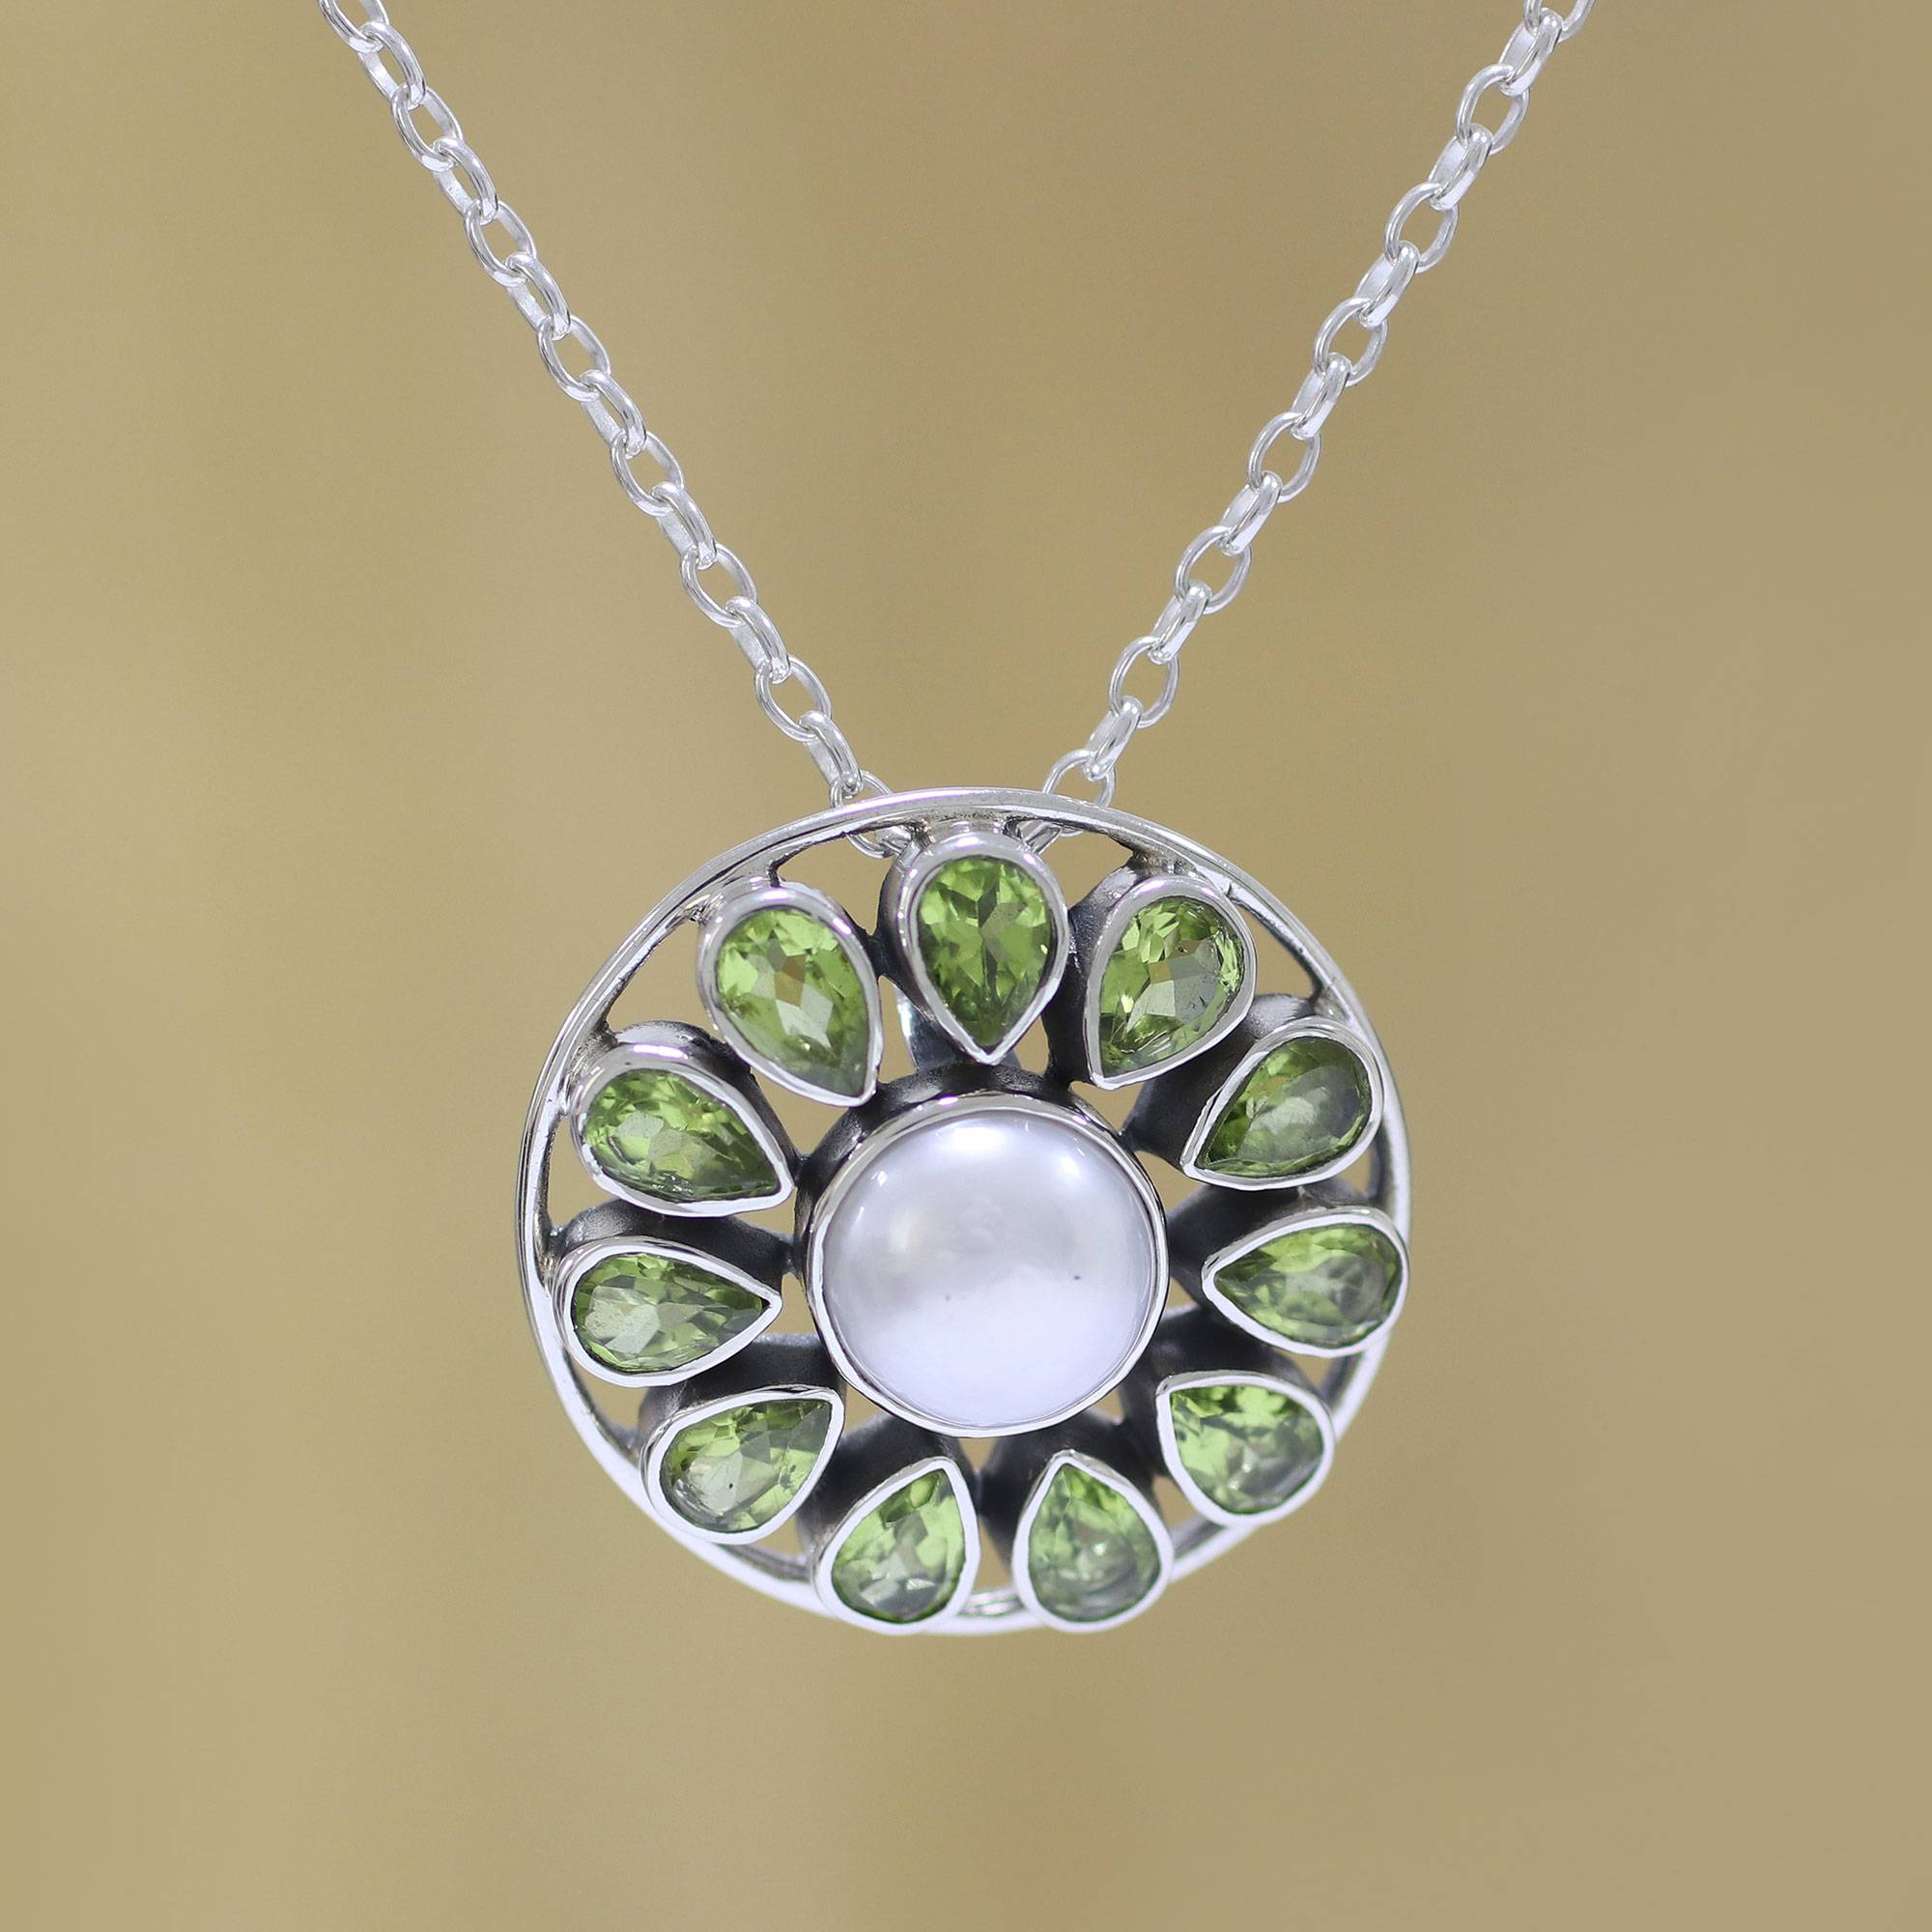 Peridot And Cultured Pearl Sterling Silver Pendant Necklace, 'peridot Petals' Pertaining To Best And Newest Offset Freshwater Cultured Pearl Circle Necklaces (View 17 of 25)